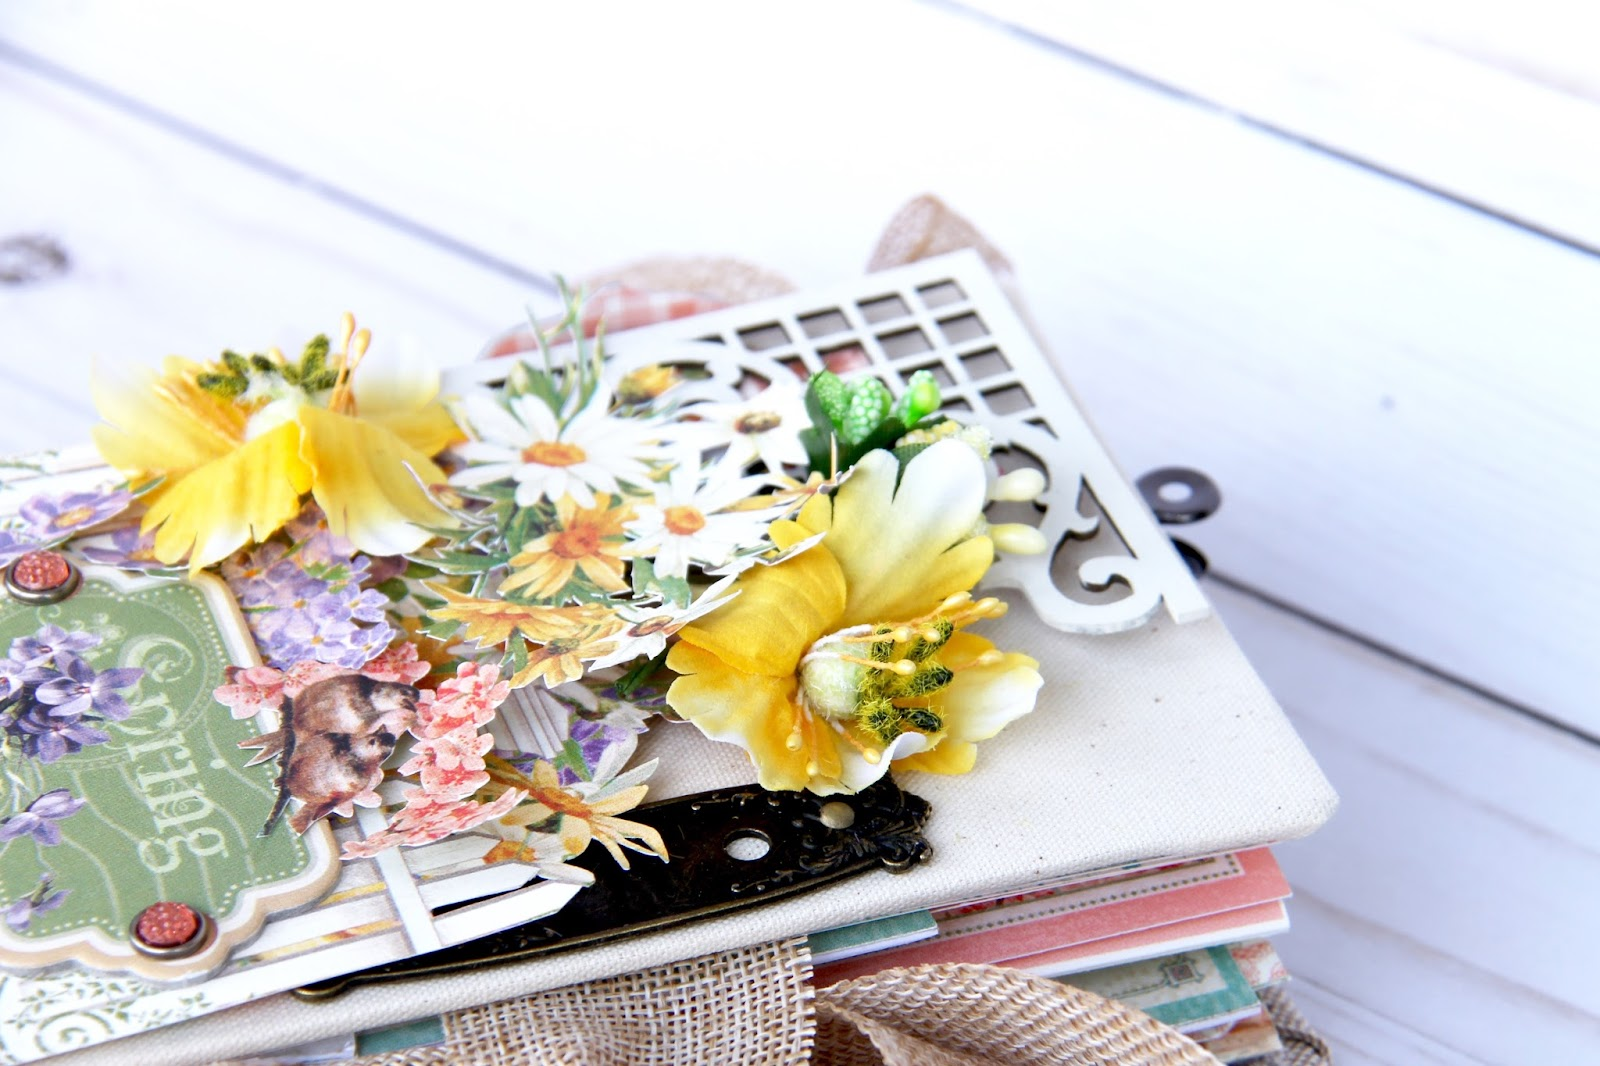 Four seasons Spring Album by Marina Blaukitchen Product by Graphic 45 photo 5.jpg